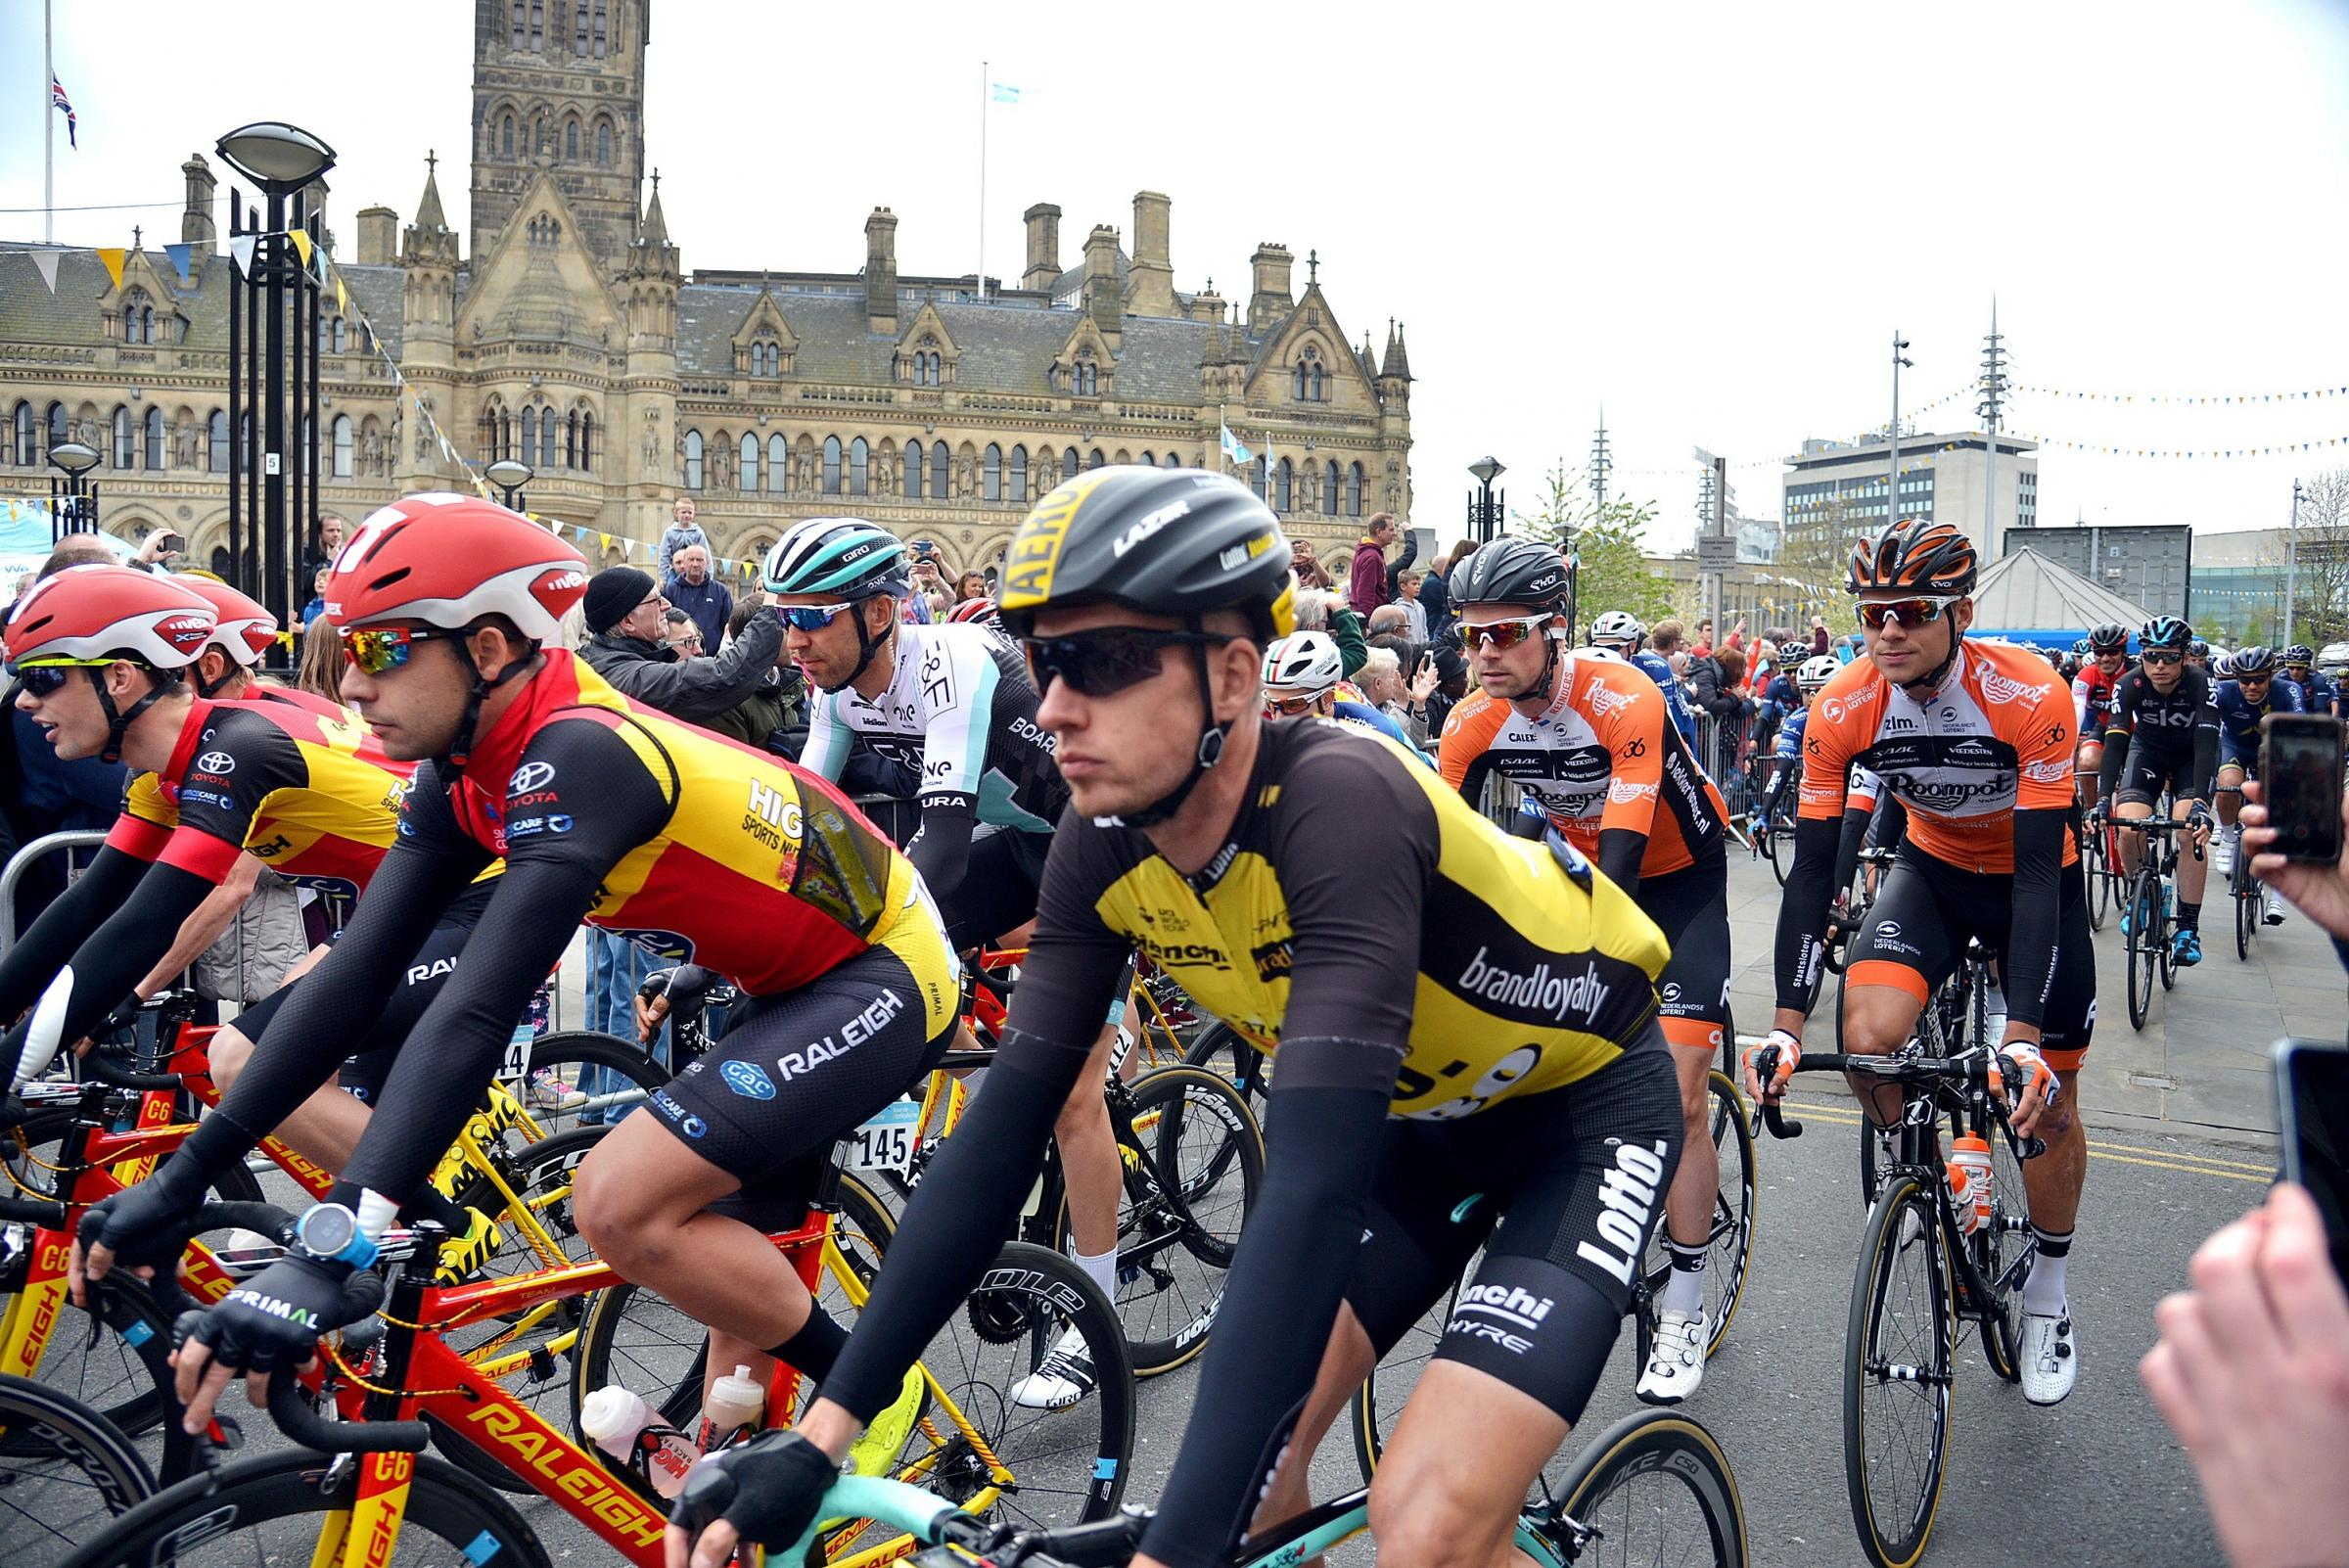 Bradford UCI World Cycling Championship timings released